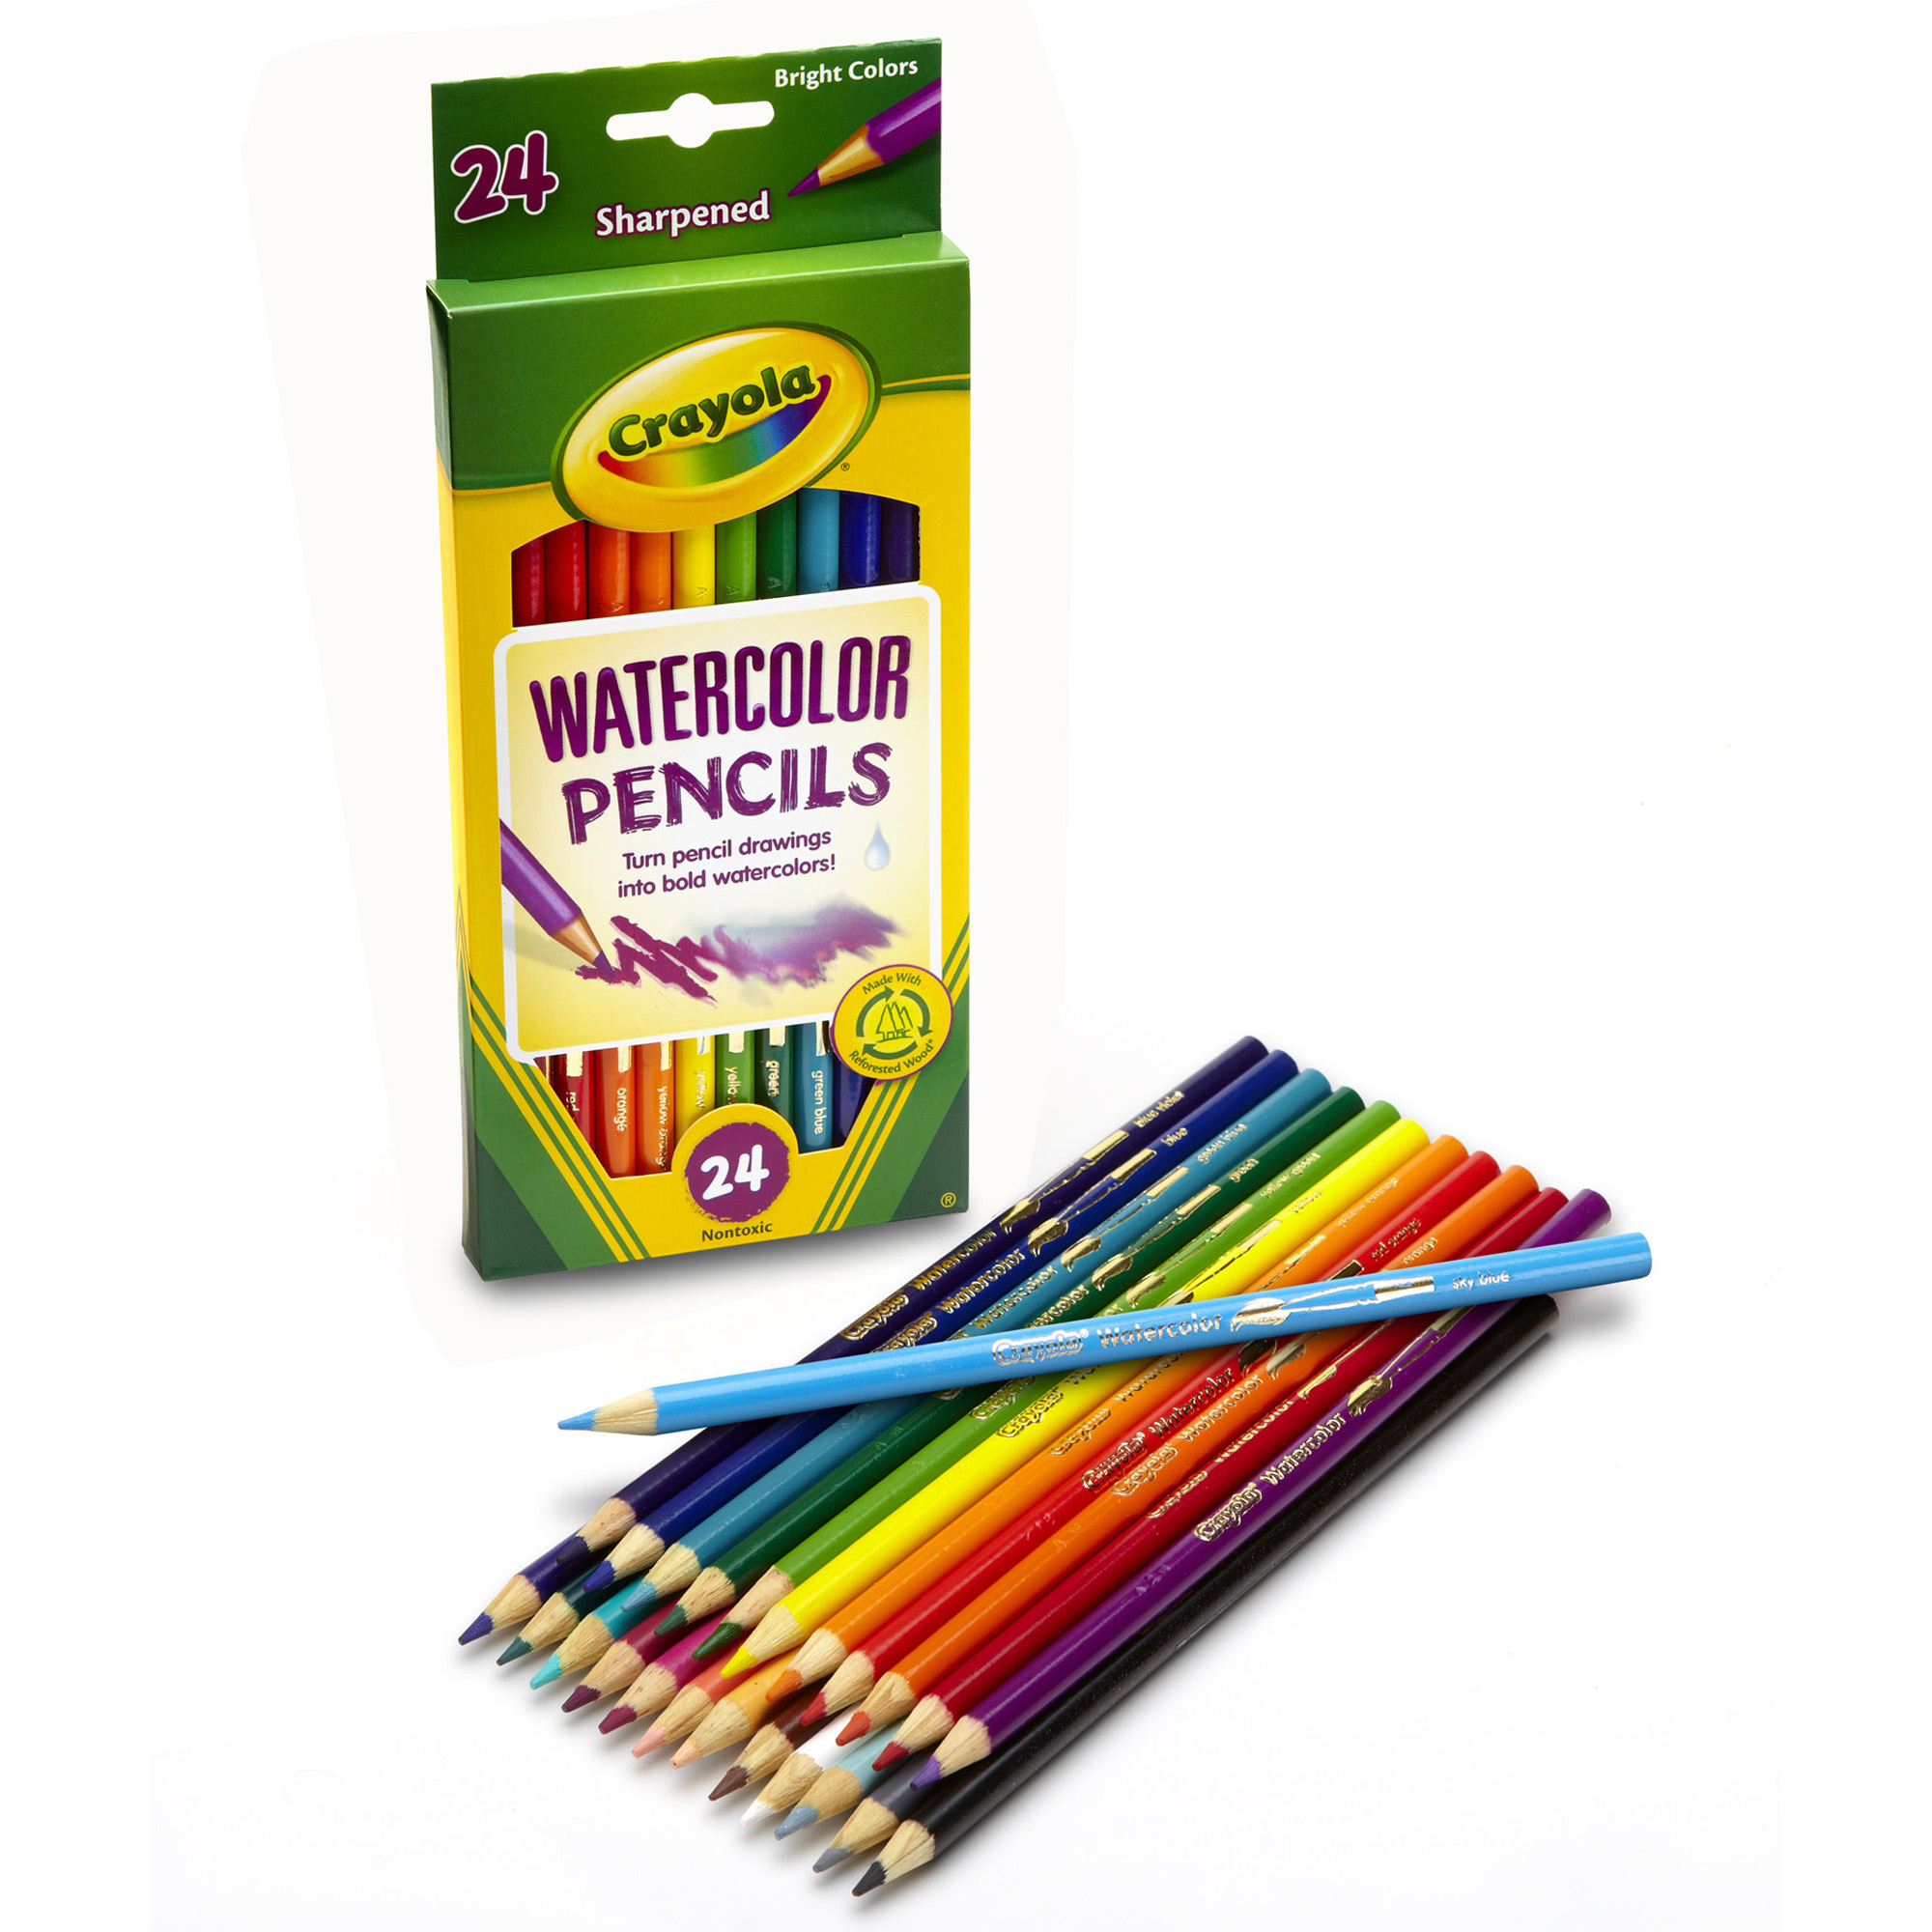 Crayola Watercolor Pencils 24 Colors Per Box Set Of 3 Boxes